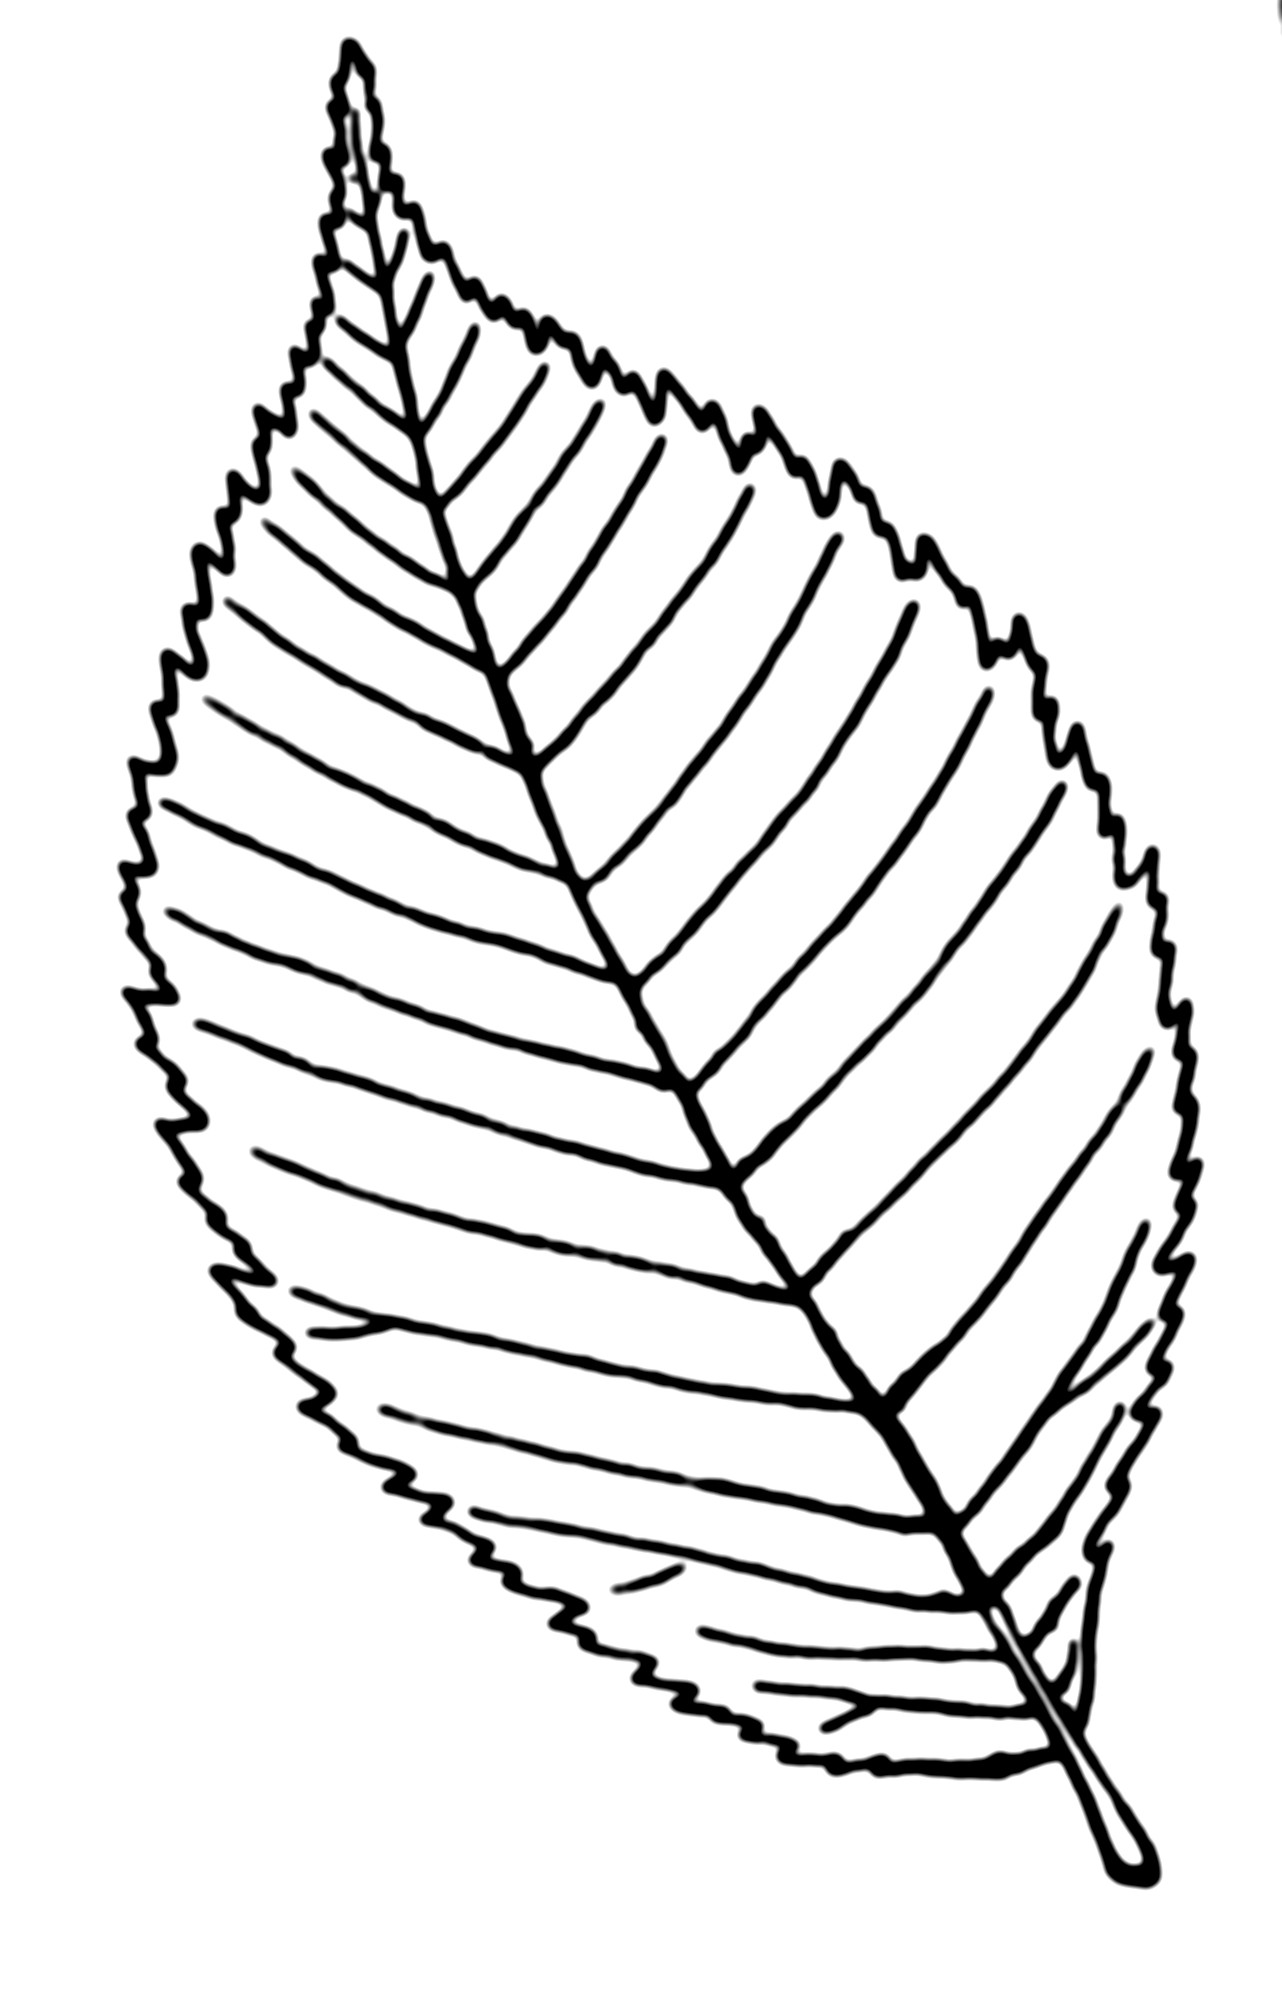 Rose Leaf Vector At Free For Personal Use Flower Line Diagram Simple Drawing Of Bud Stock 1282x2008 Collection Download Them And Try To Solve